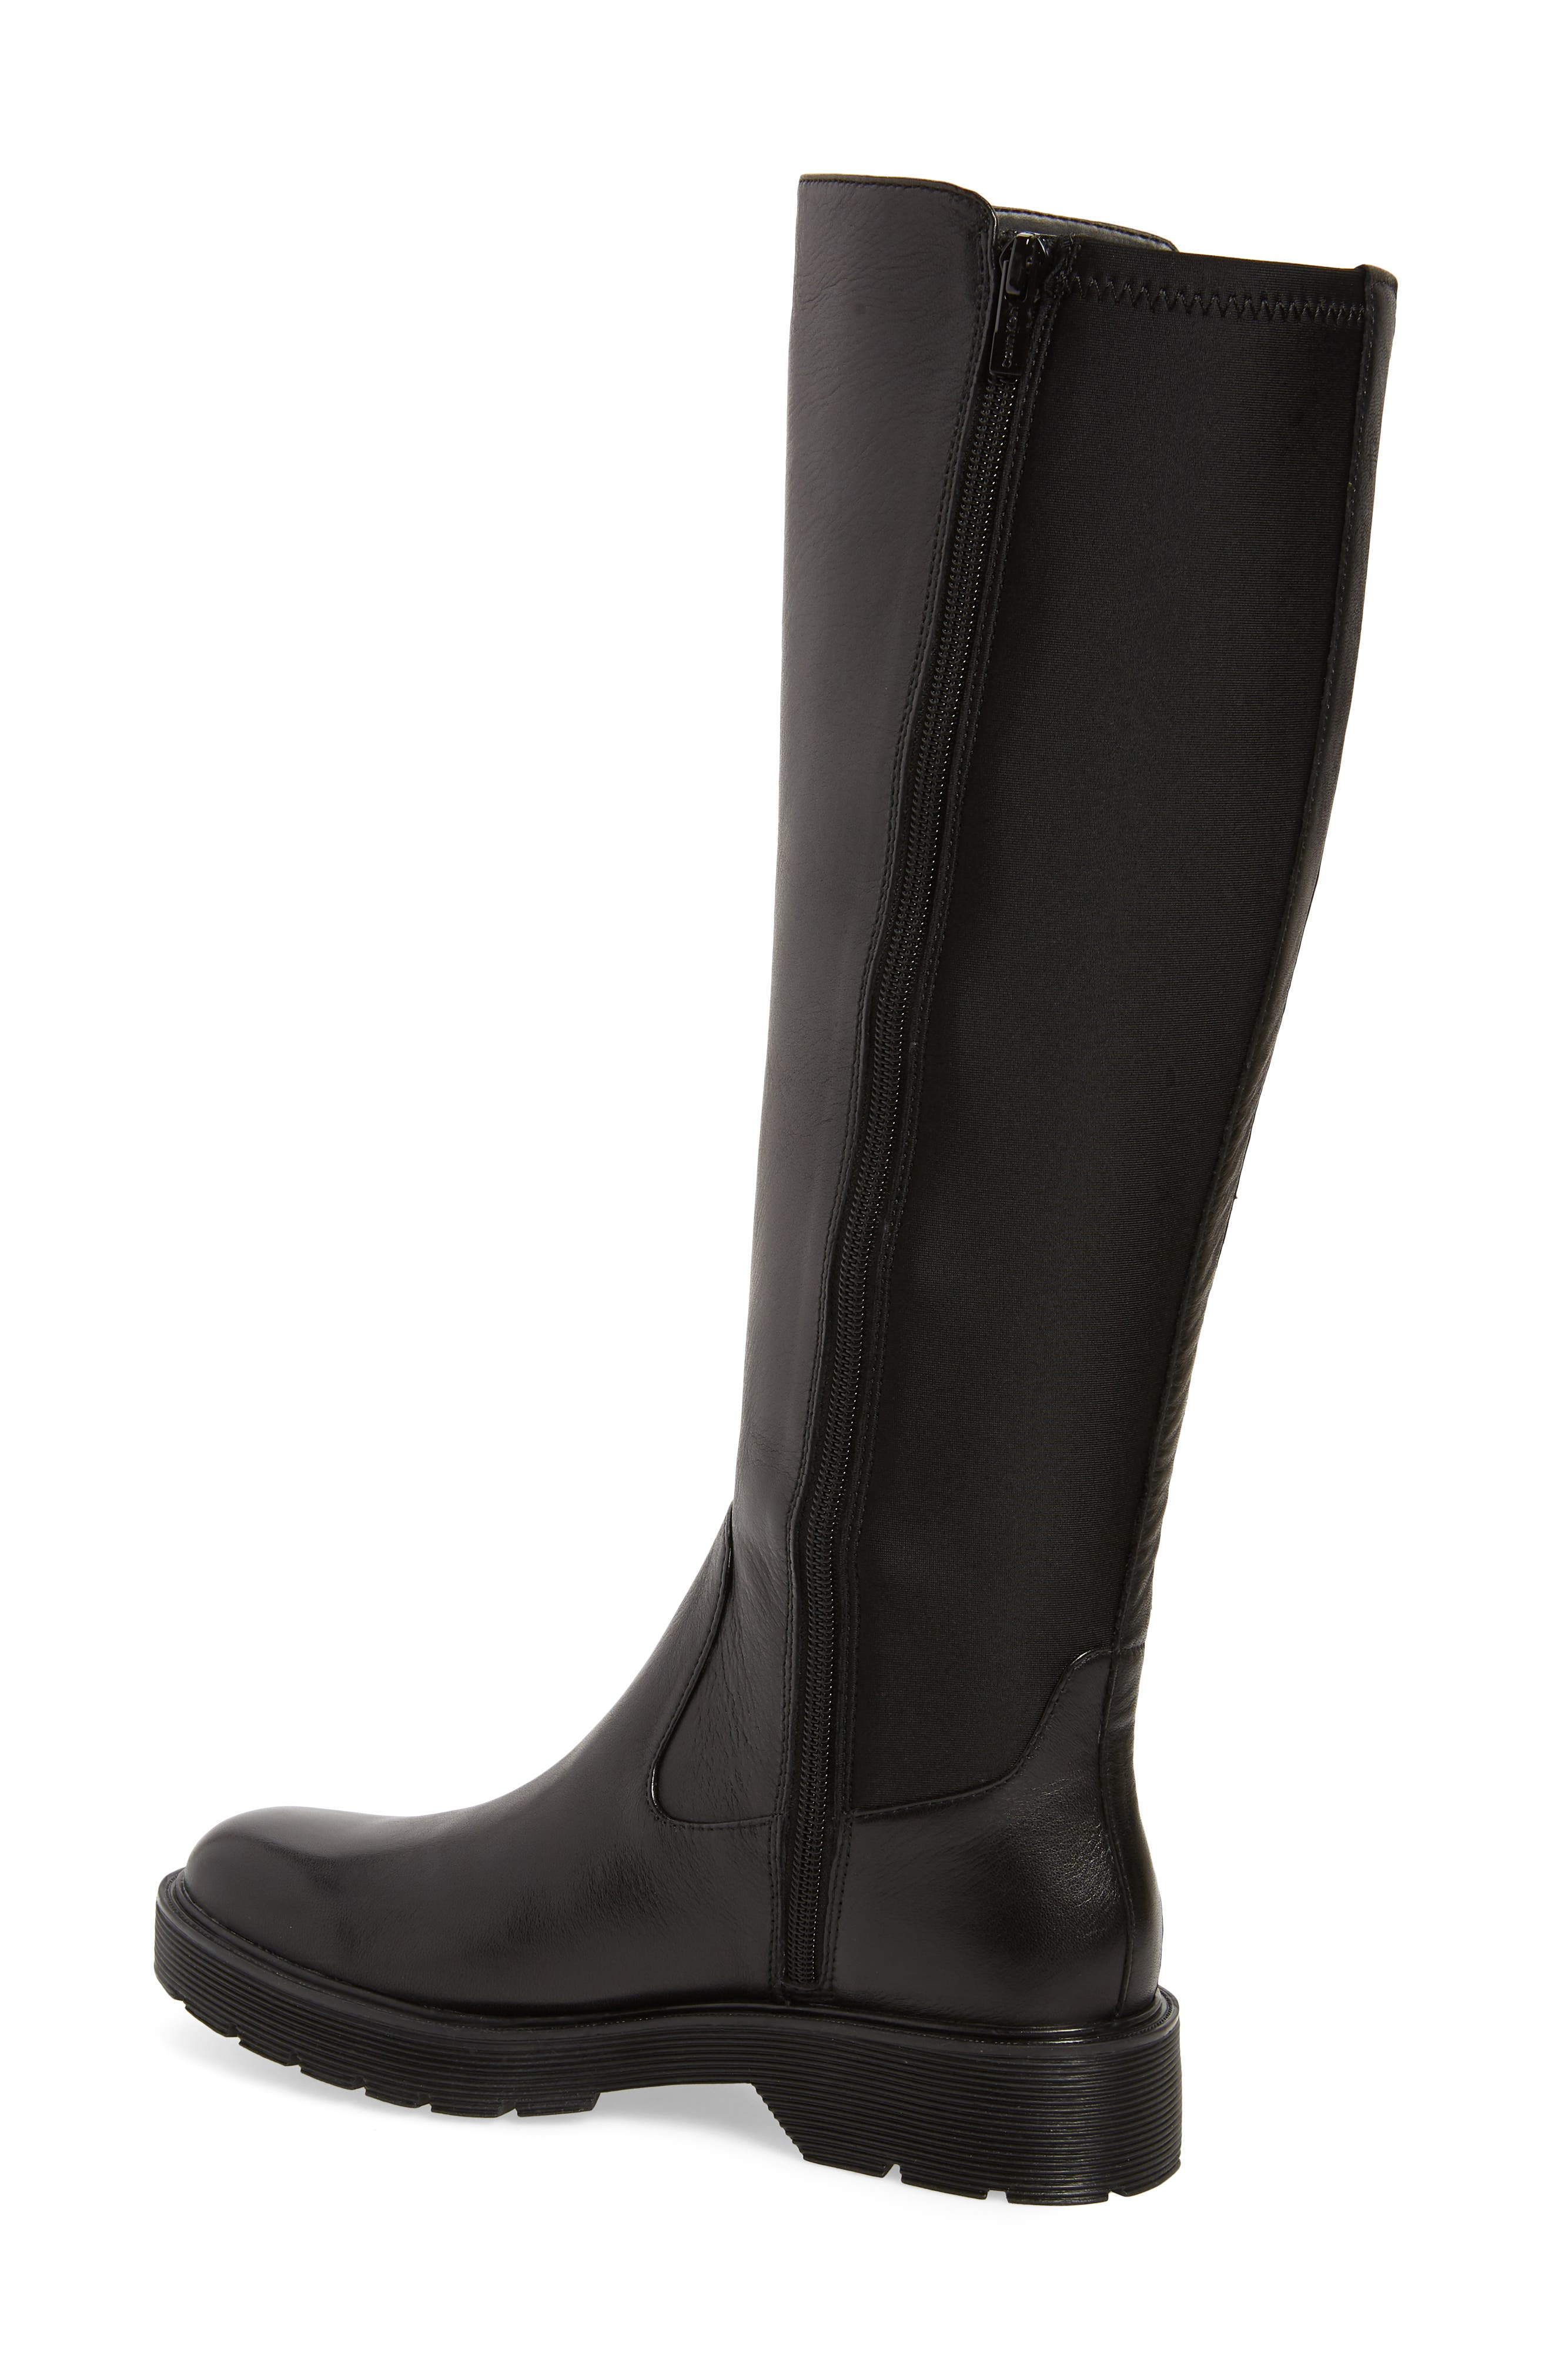 CALVIN KLEIN,                             Themis Knee High Riding Boot,                             Alternate thumbnail 2, color,                             BLACK LEATHER